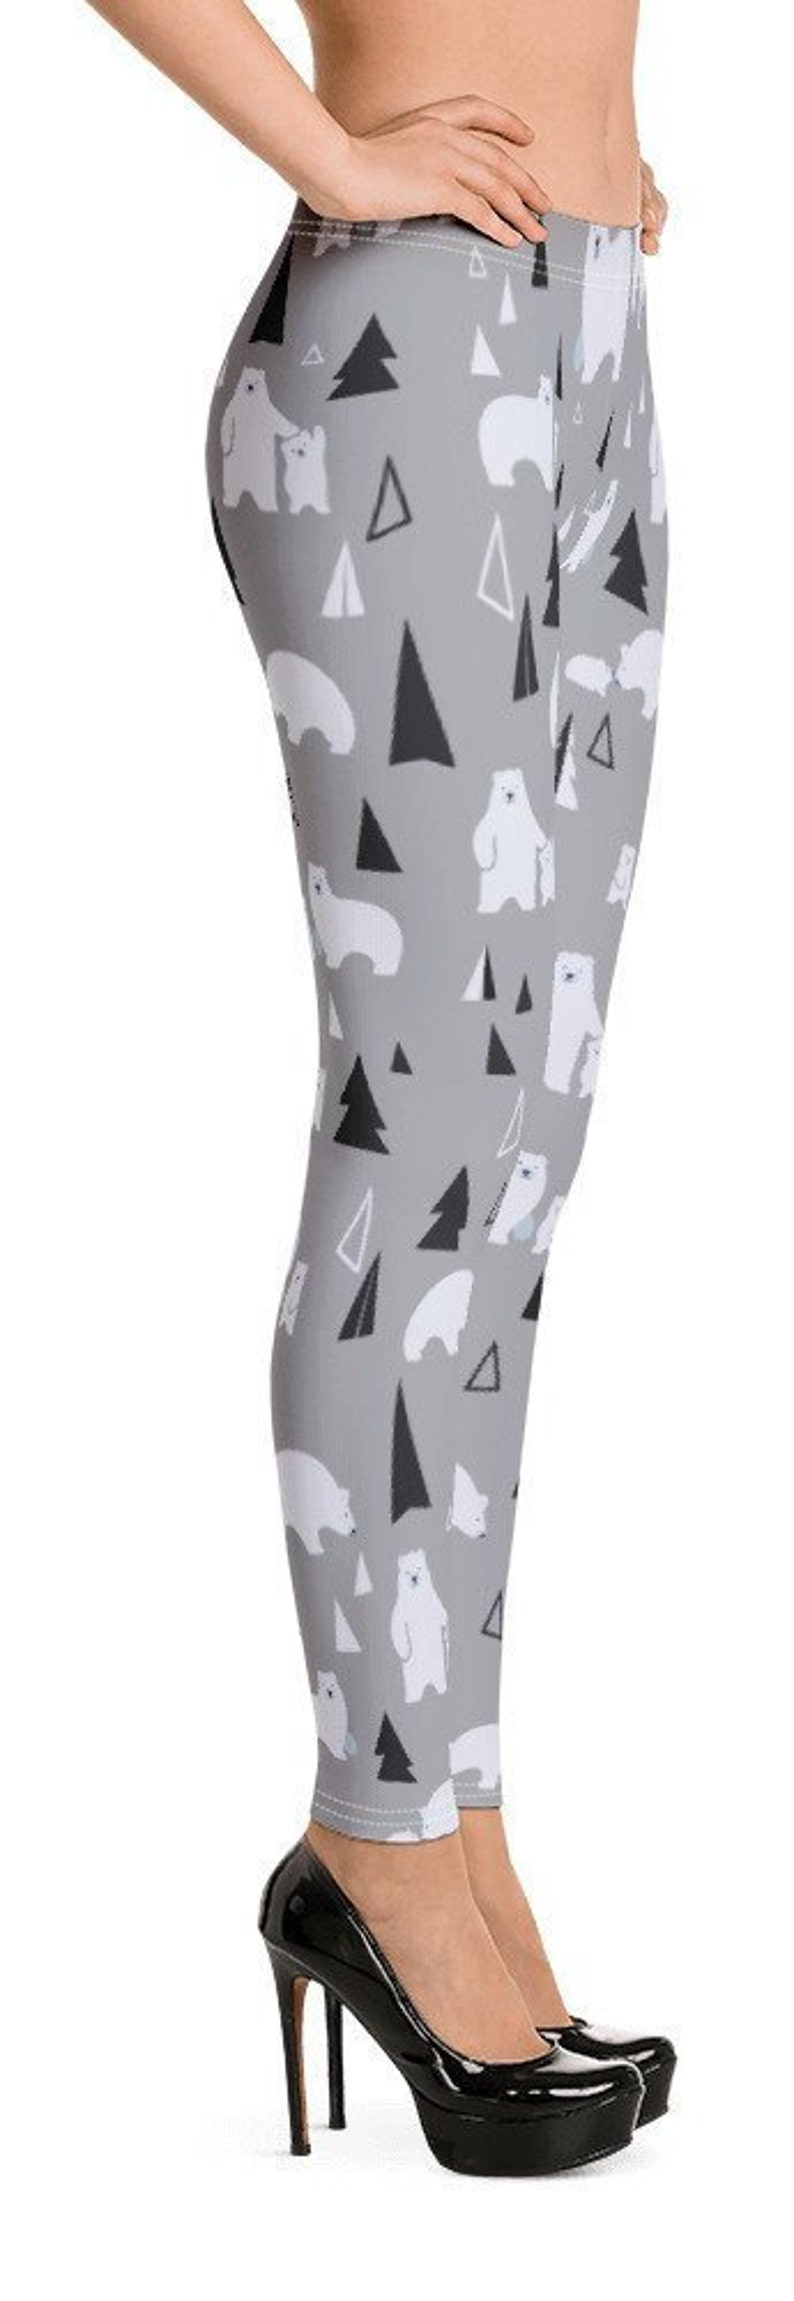 ladies quality garment from the stylish Ben More label Print Leggings